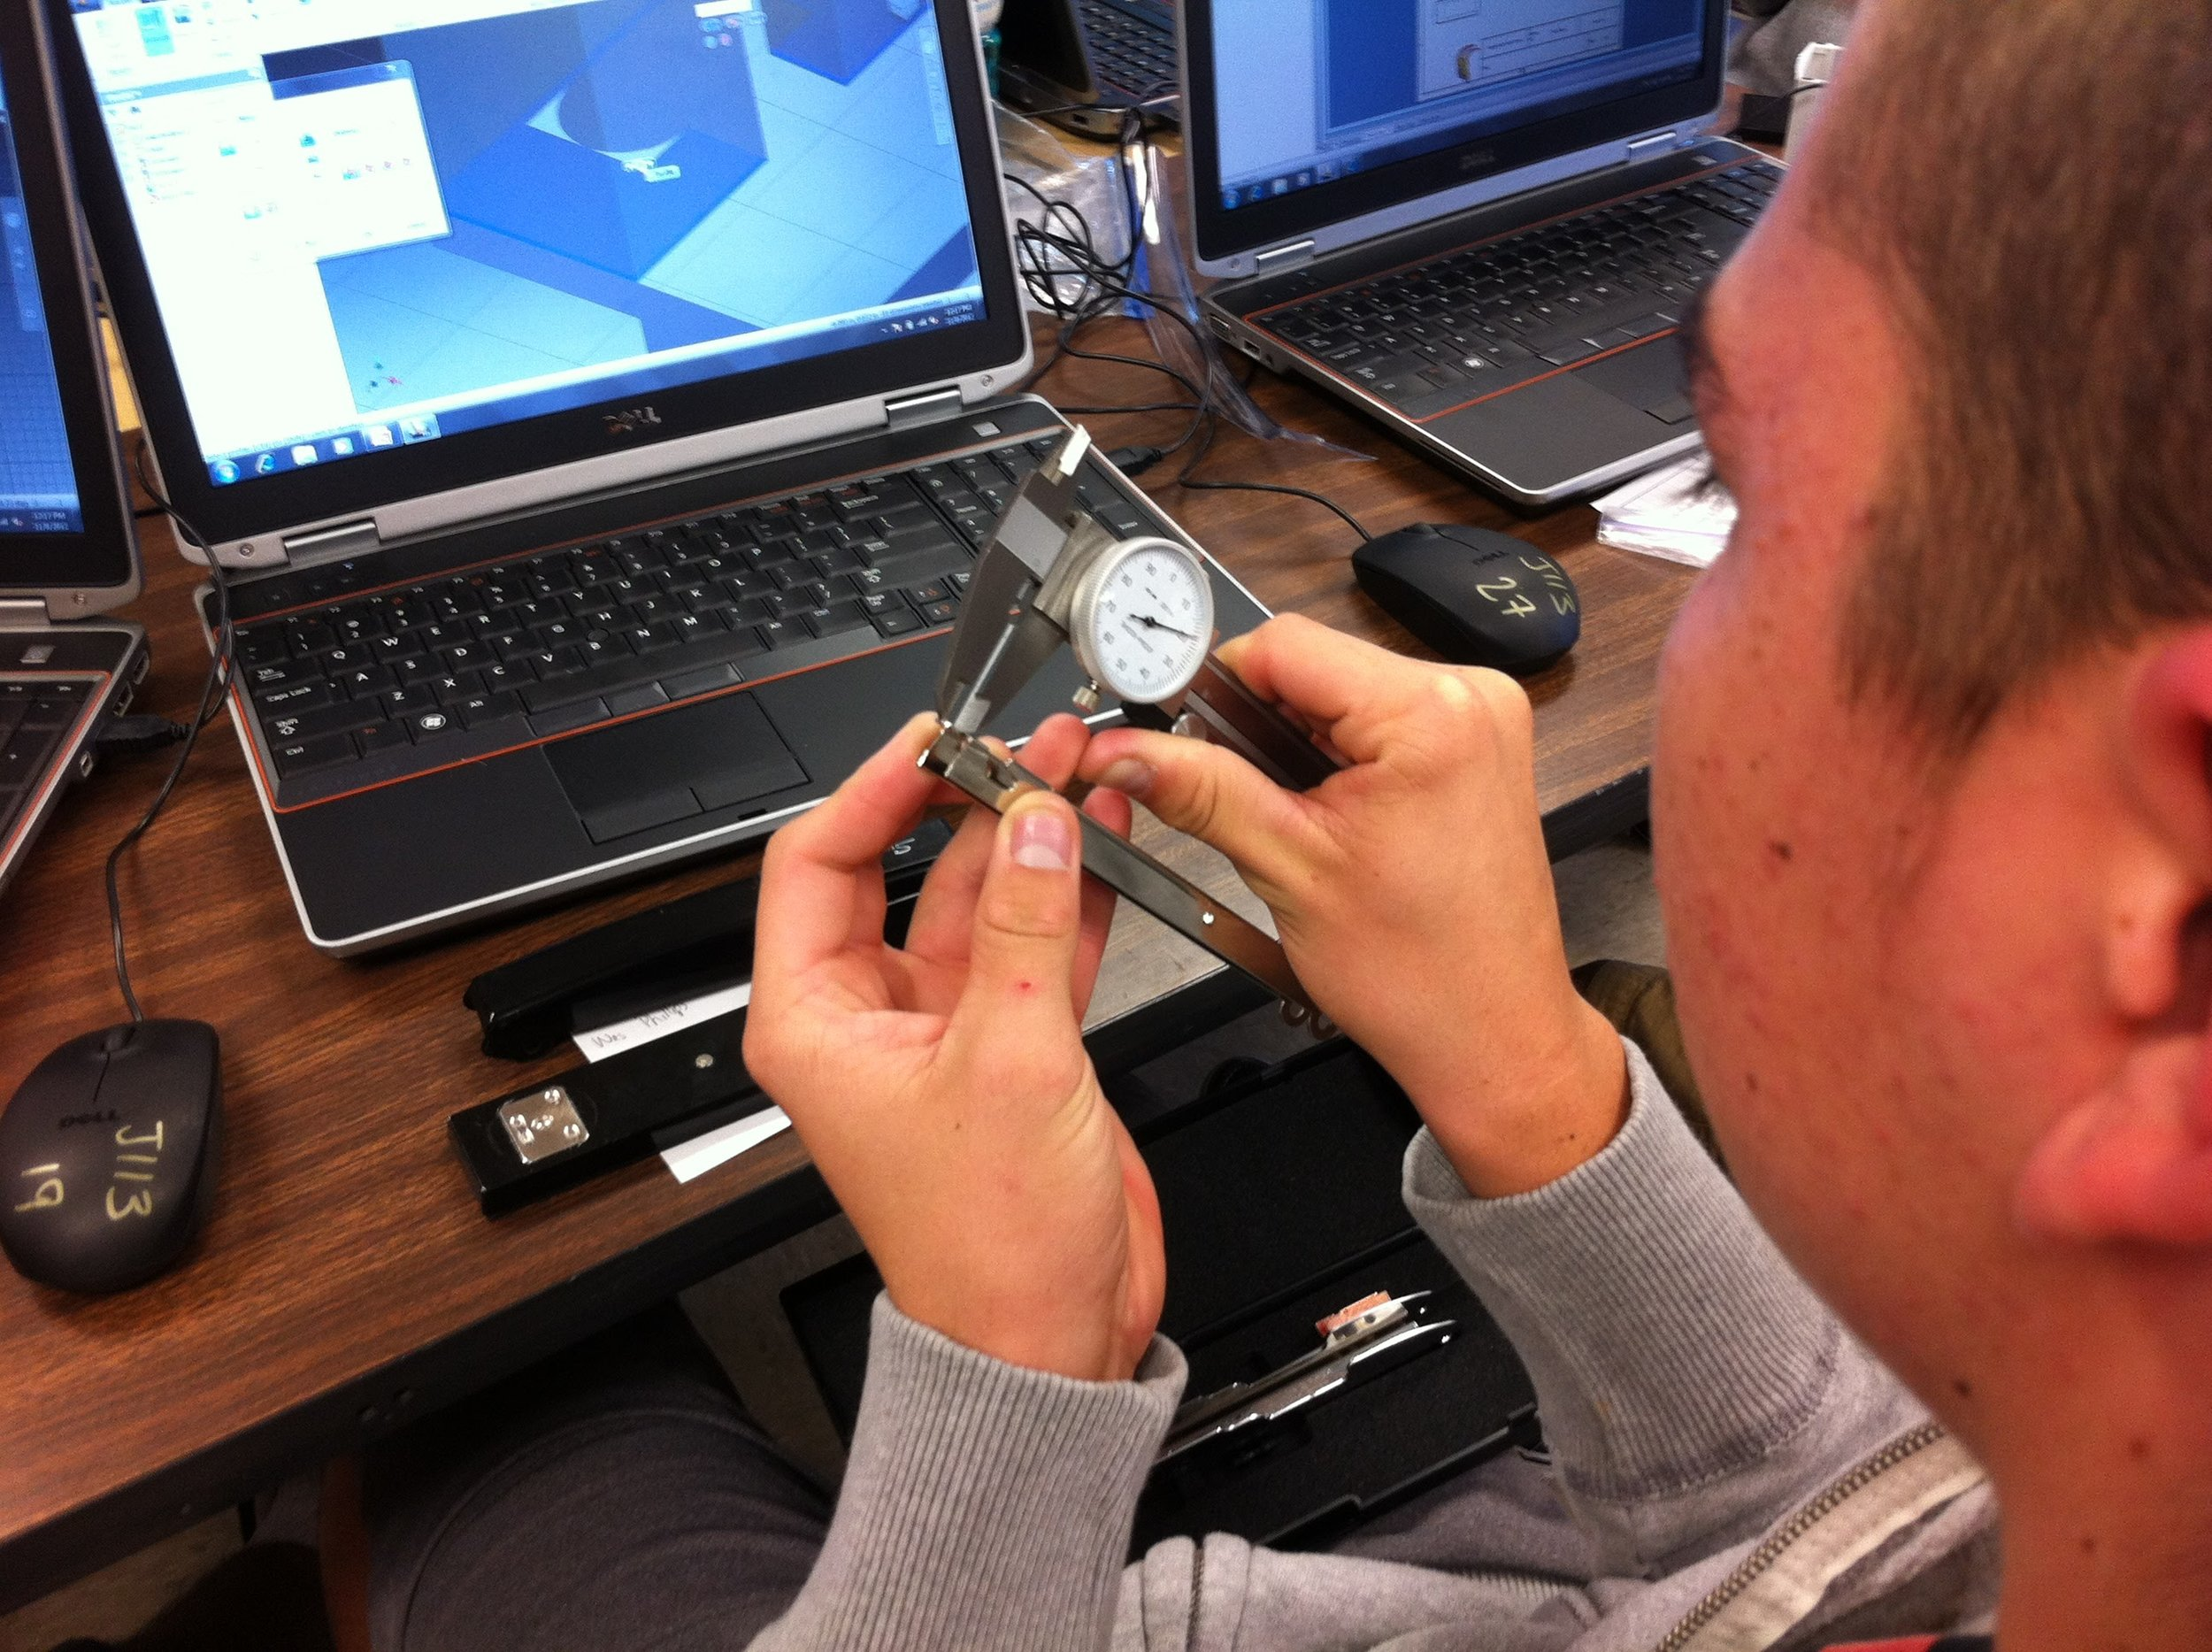 Engineering Student measures an object